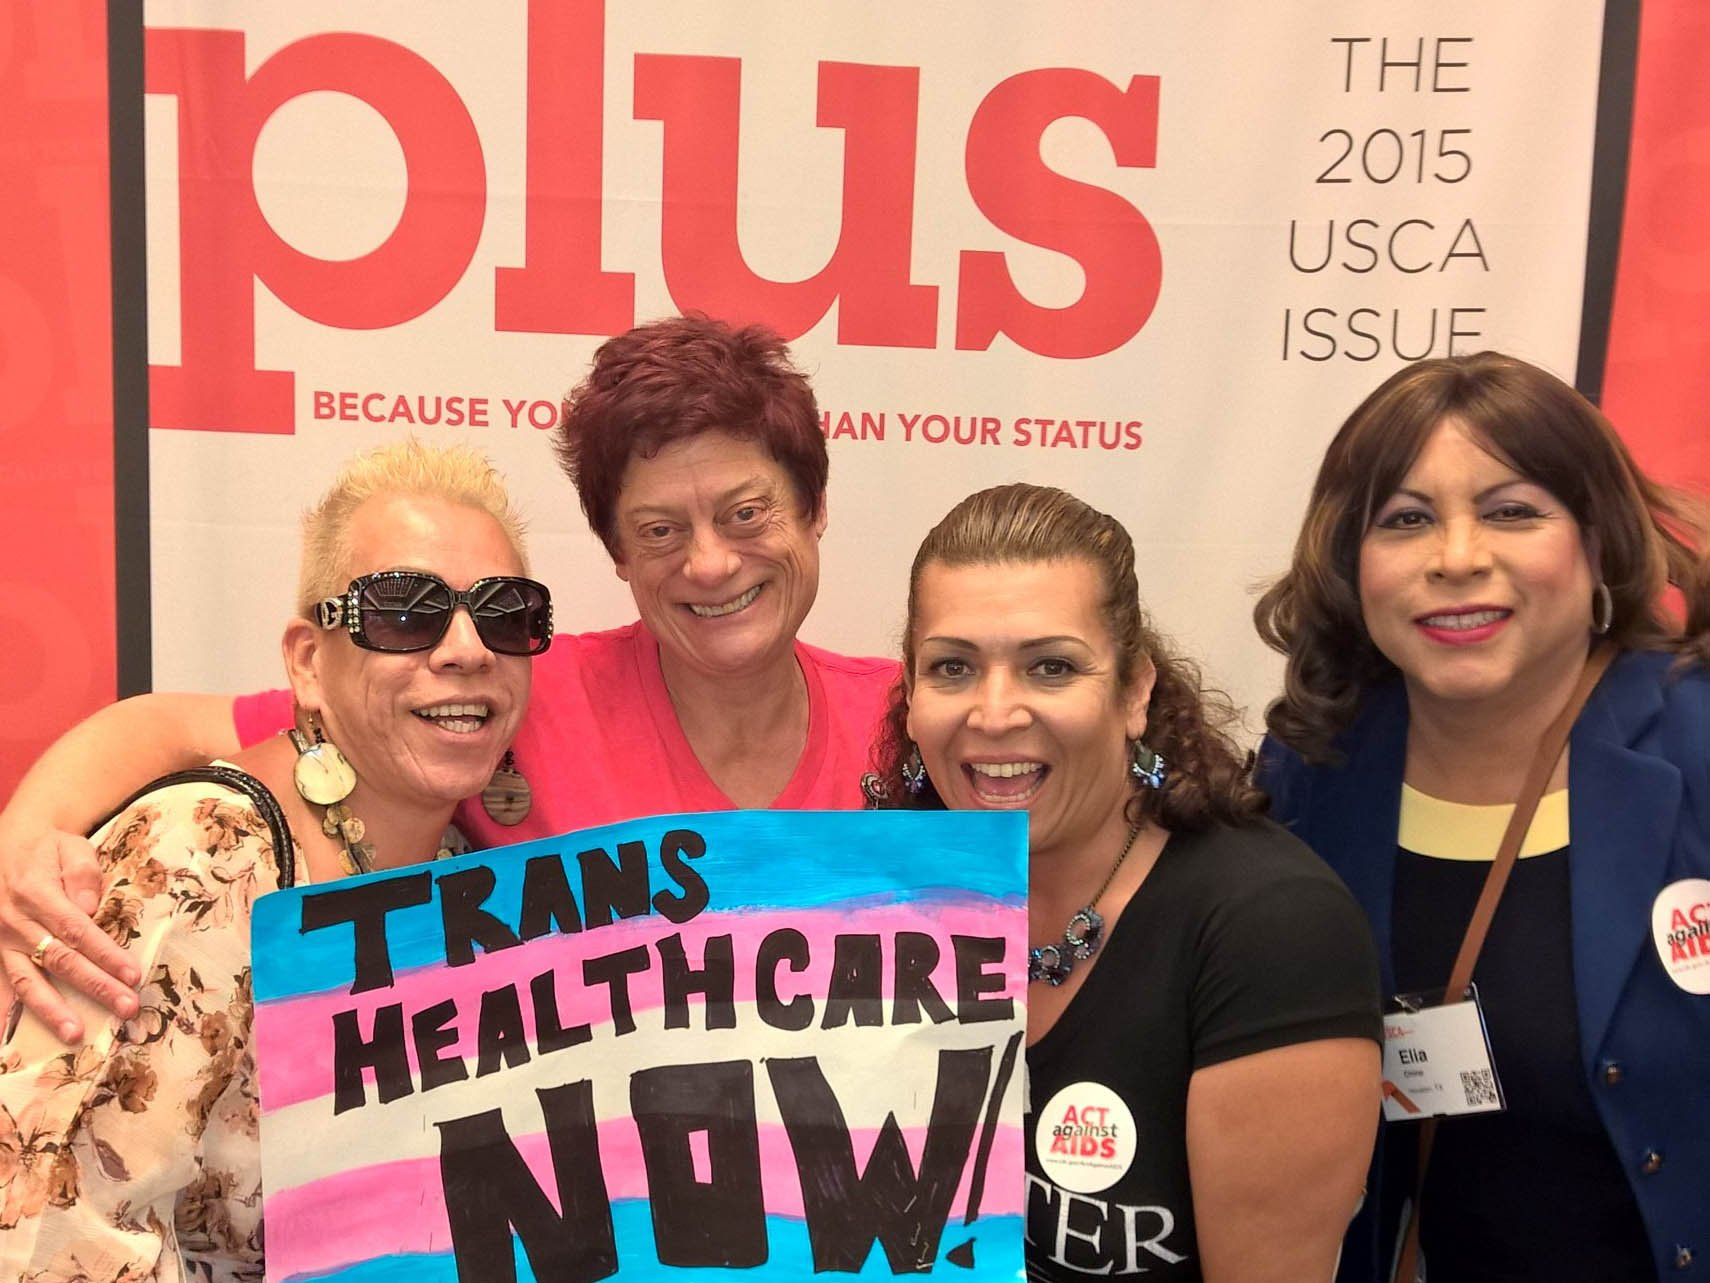 Barb Cardell, Bamby Salcedo and other activists at the U.S. Conference on AIDS